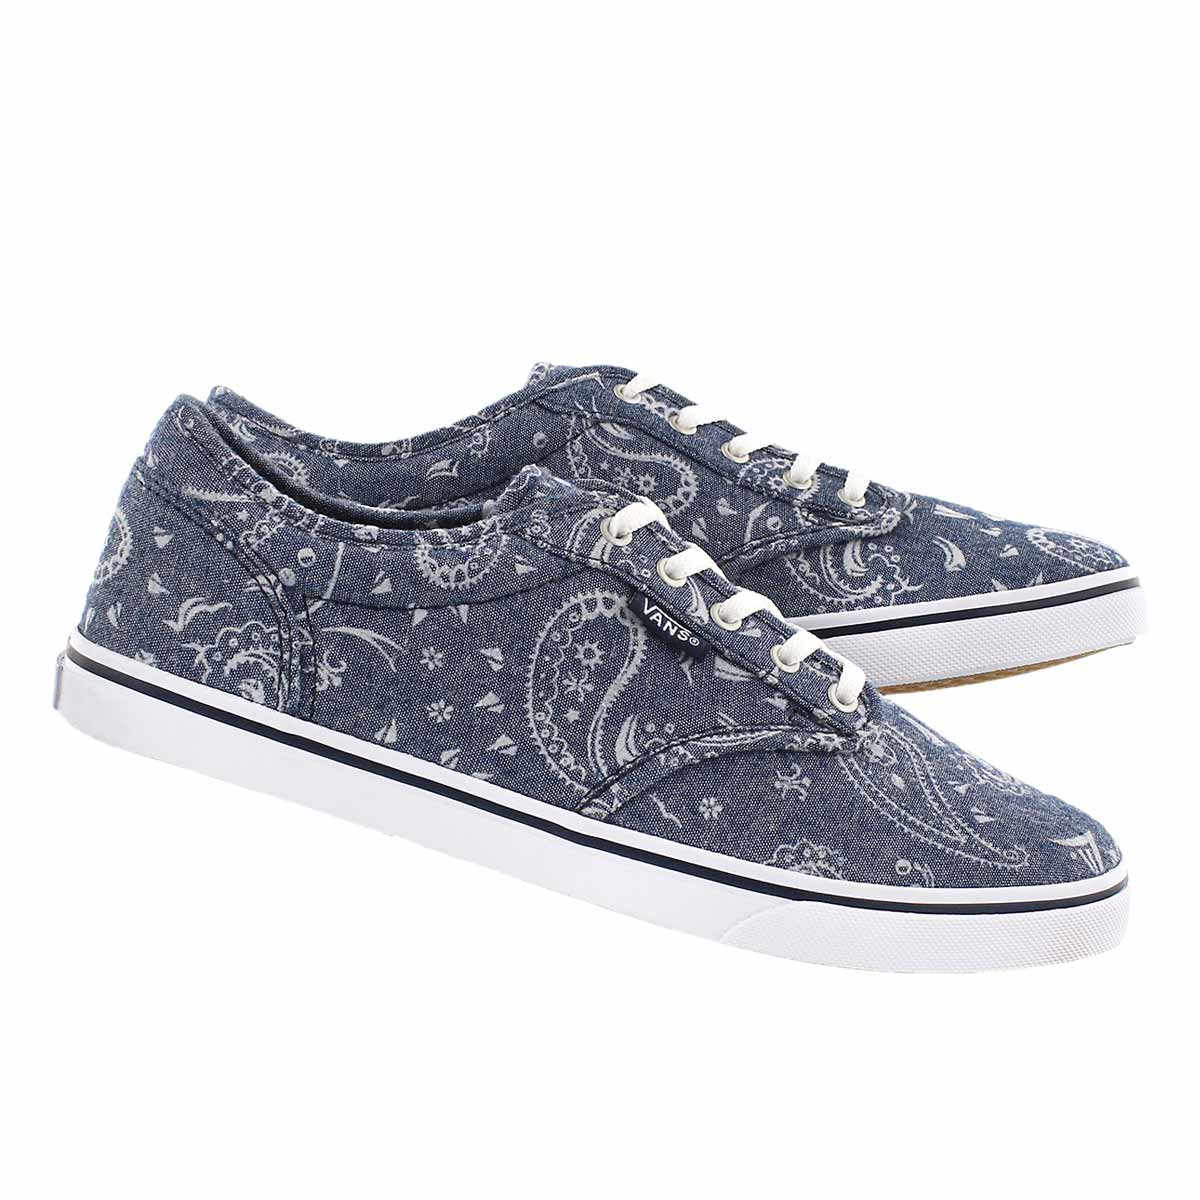 Lds Atwood Low bandana prt laceup snkr